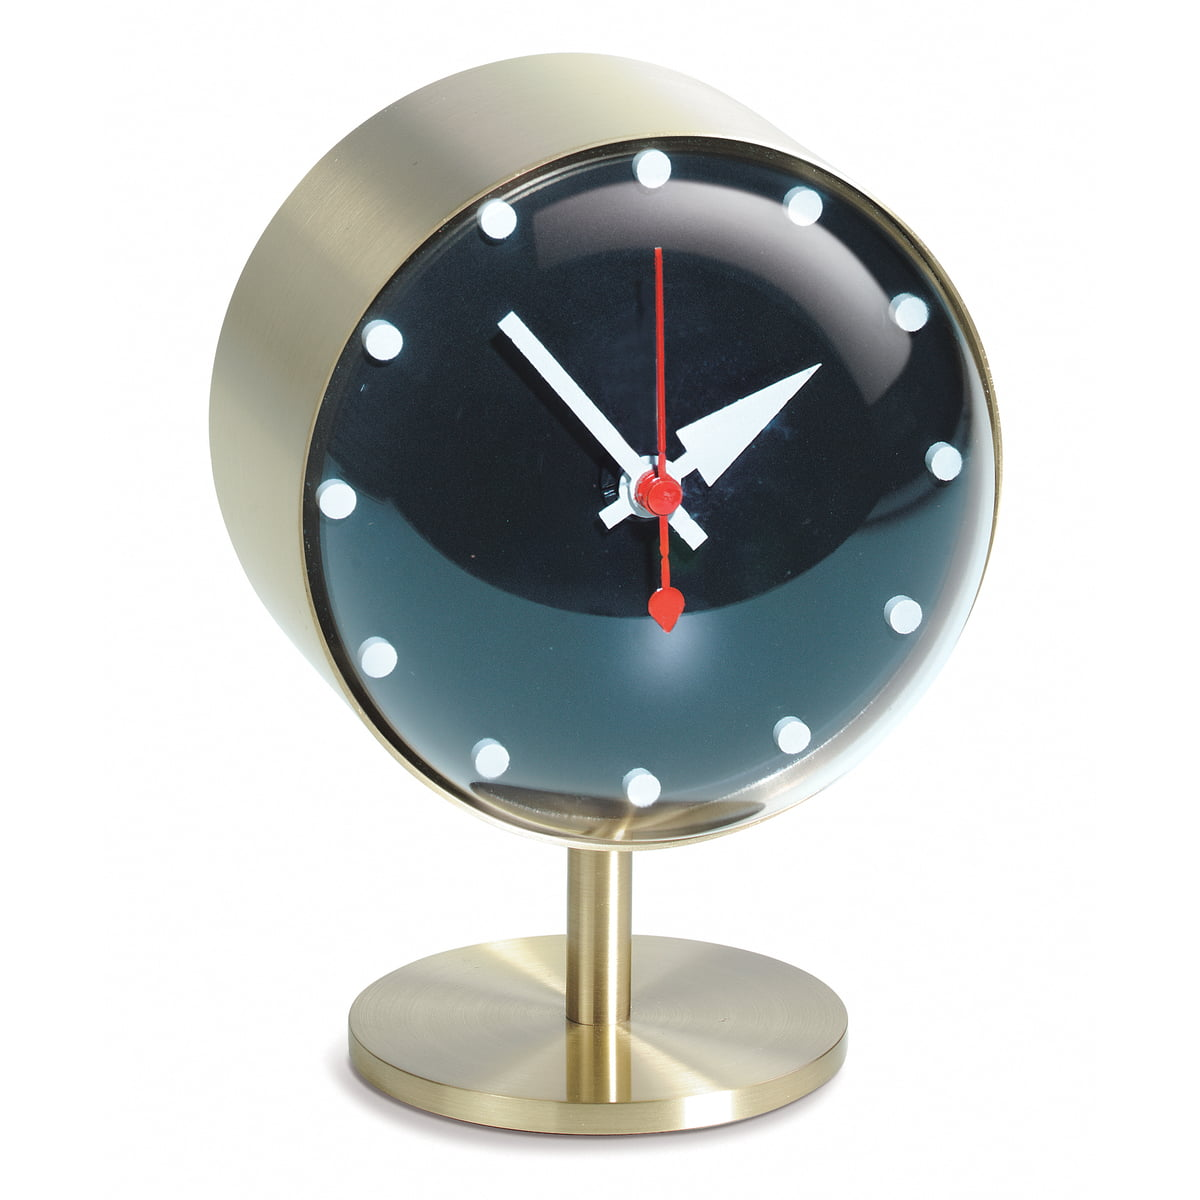 Night clock vitra shop for Design tischuhr